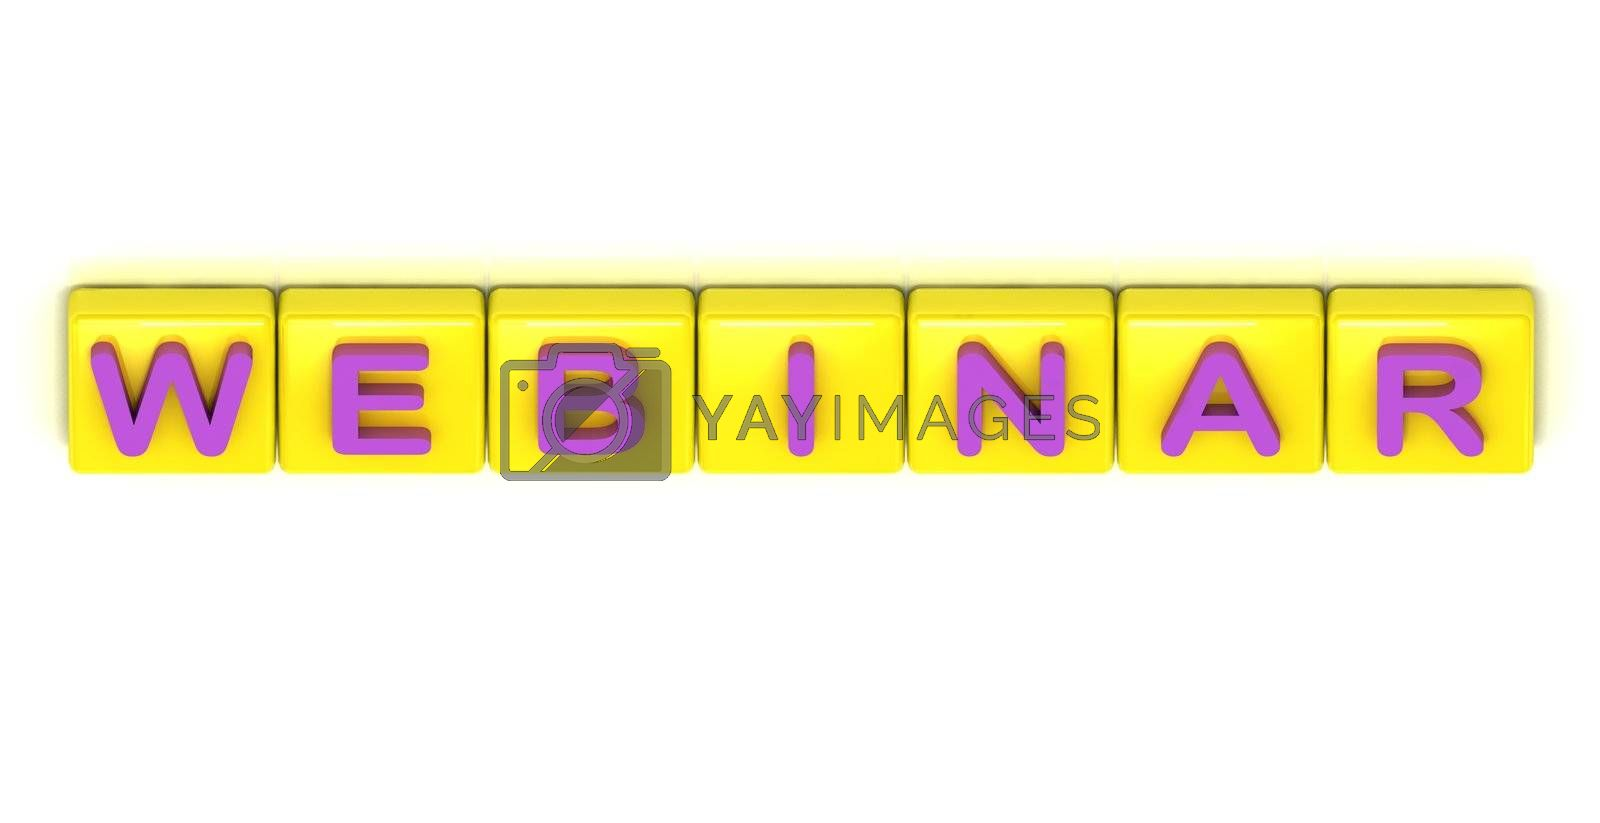 Webinar word on yellow squares on white background